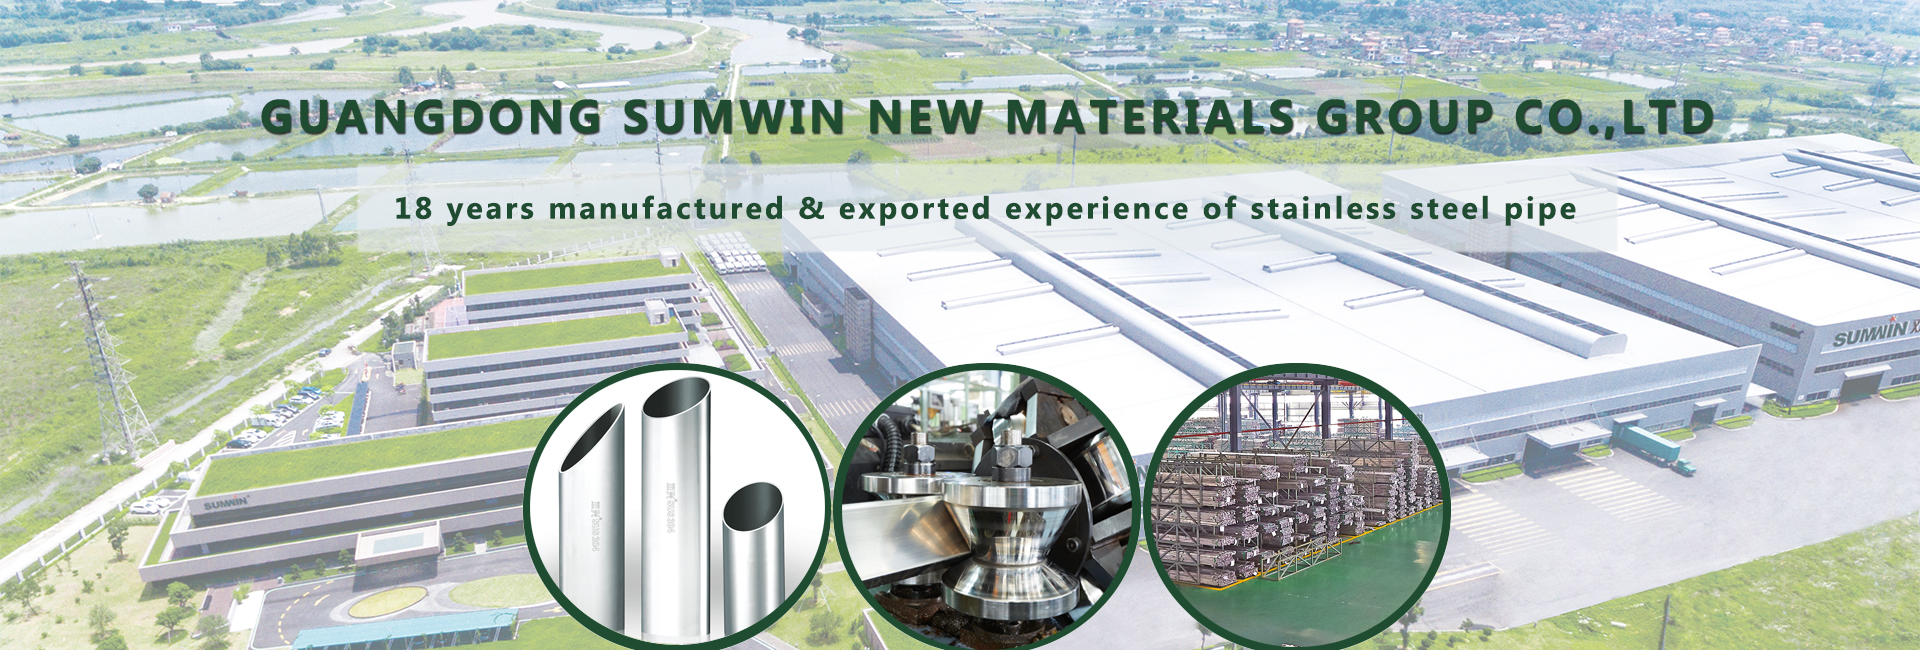 GUANGDONG SUMWIN NEW MATERIAL GROUP CO , LTD